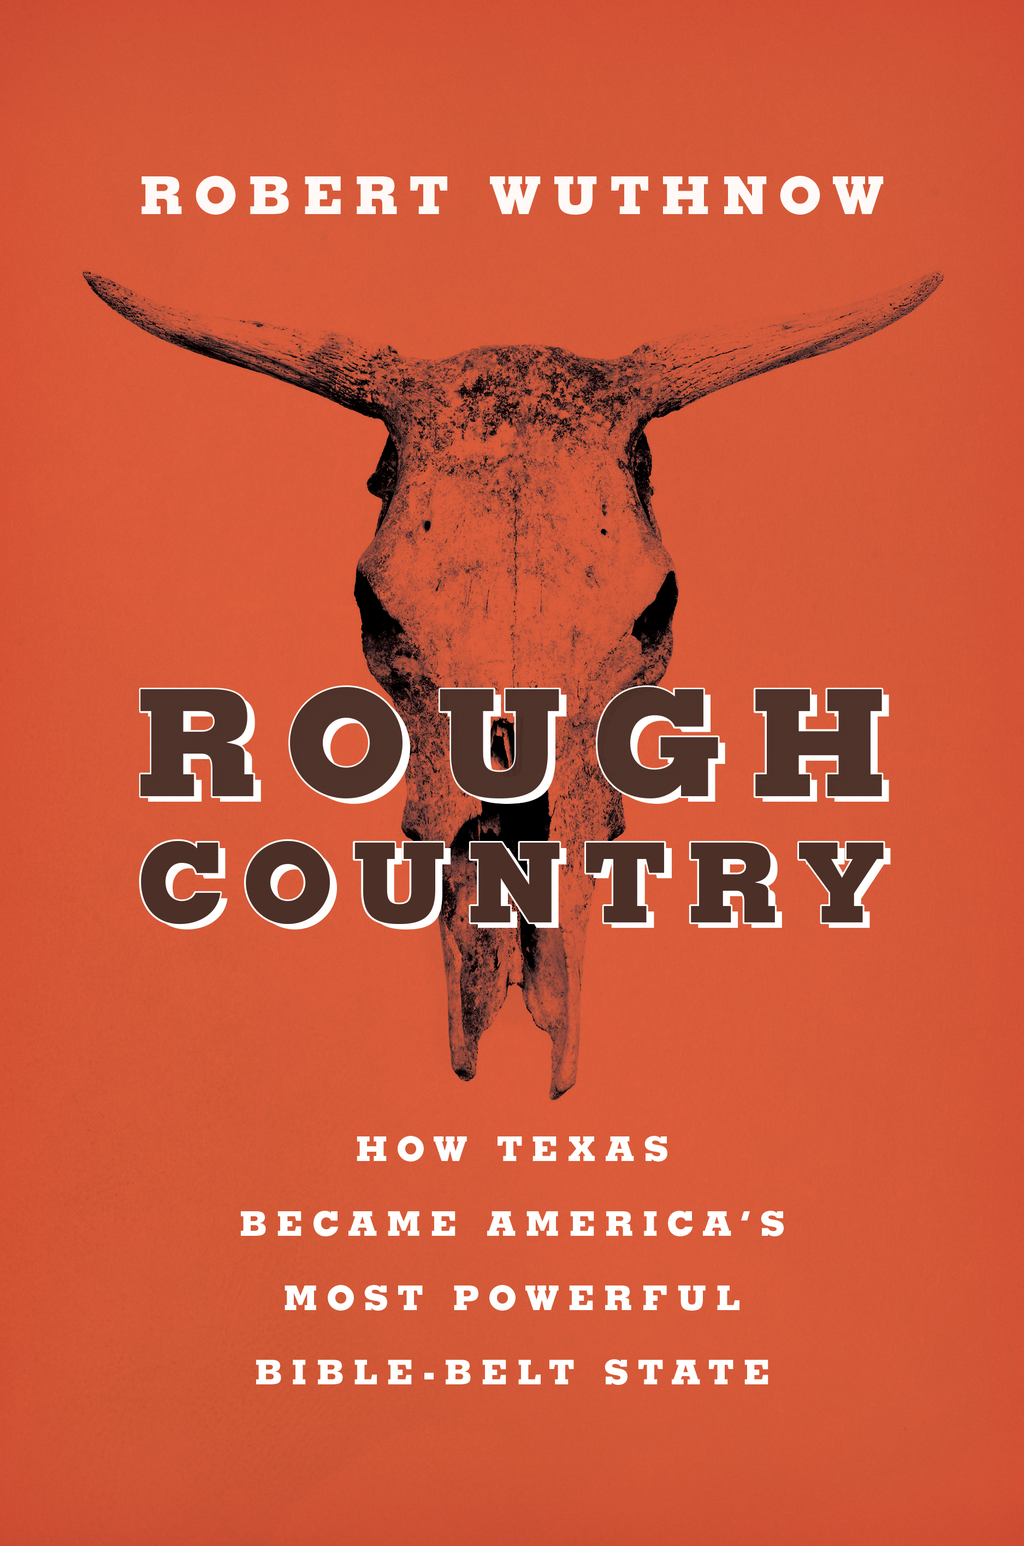 Rough Country How Texas Became America's Most Powerful Bible-Belt State